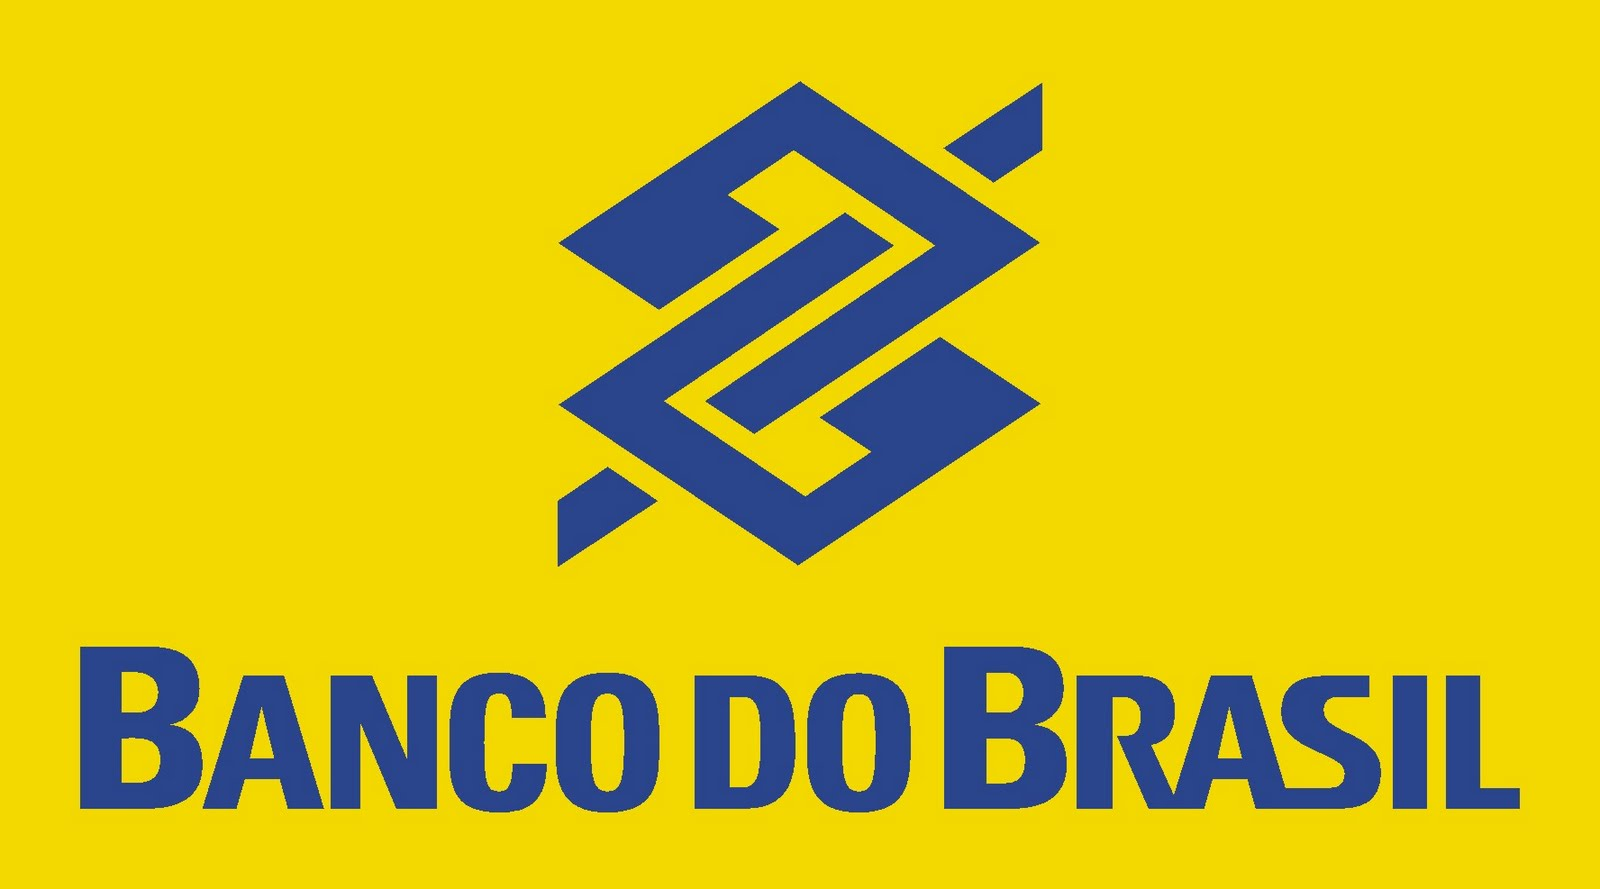 BBEmpresas Entrepreneurship Campaign - Working for one of the biggest banks in Brazil